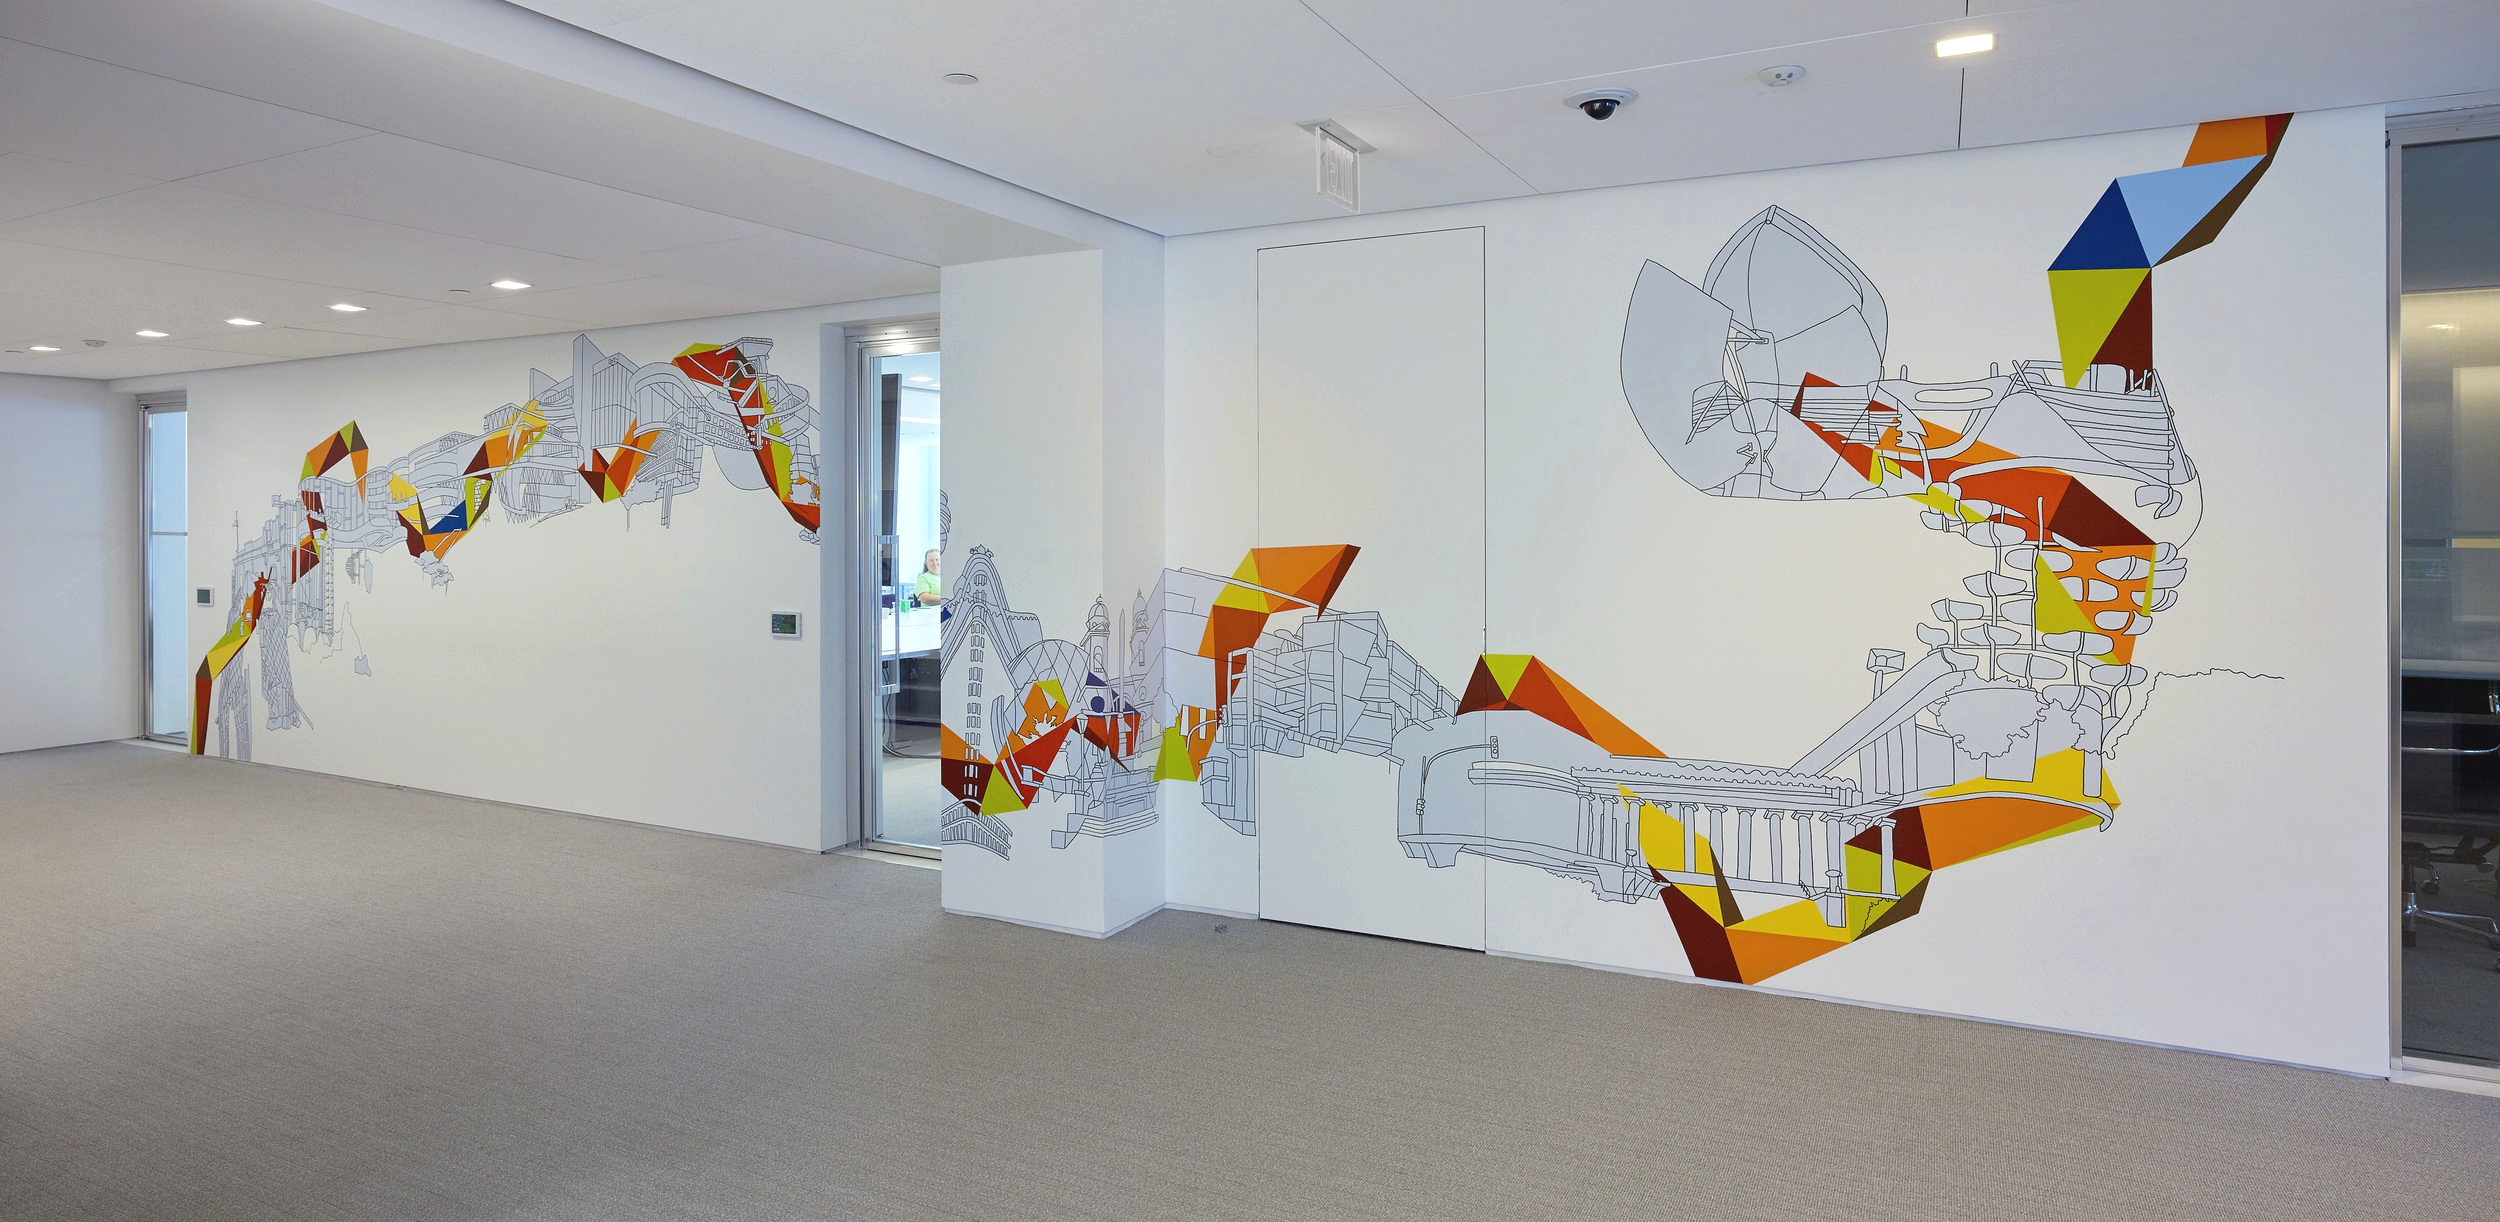 Art Wall Wall Drawings Kim Schoenstadt